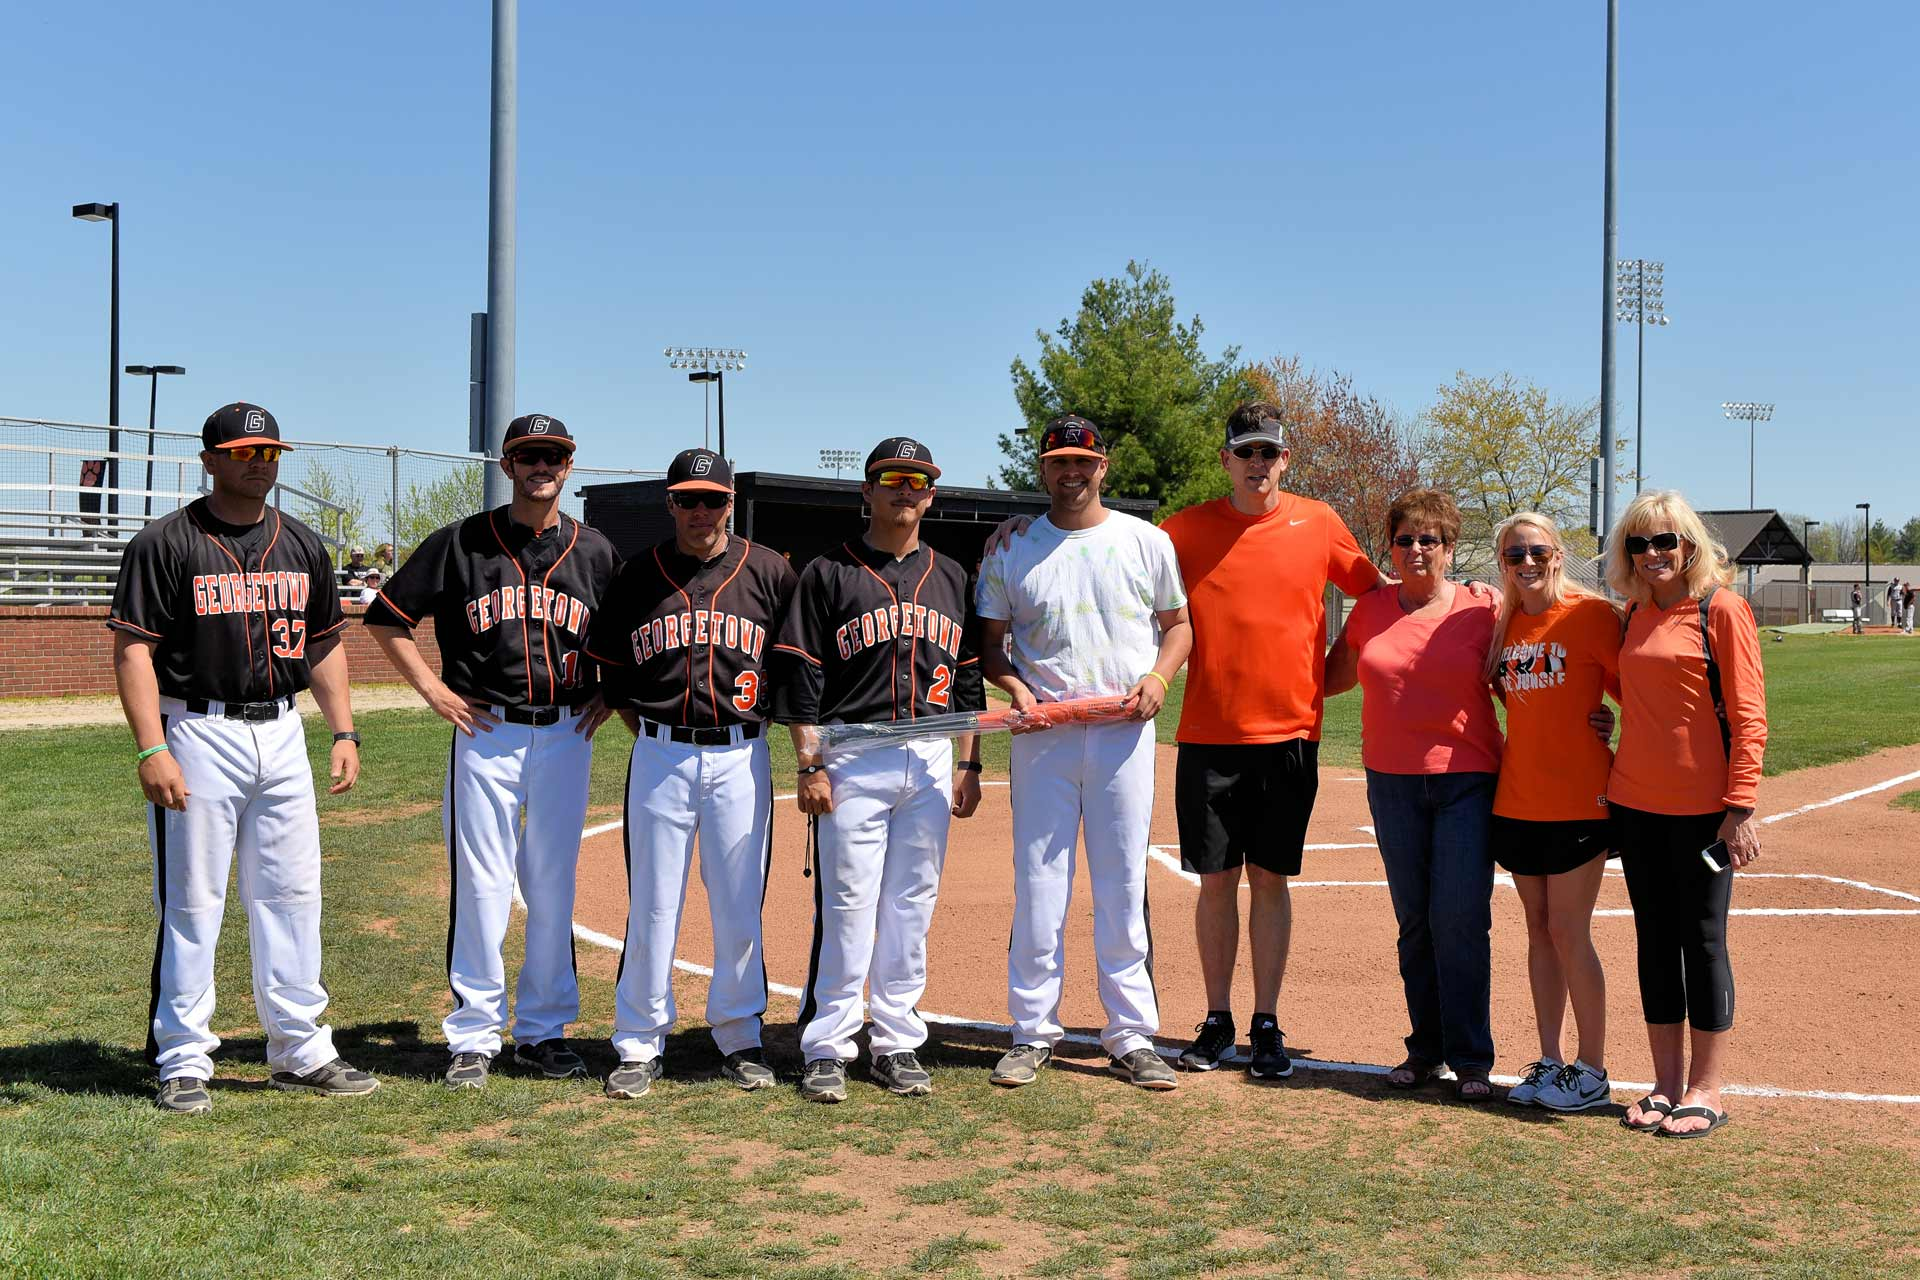 Trent poses for a photo on a baseball field, surrounded by his teammates and his family members, holding a baseball bat.